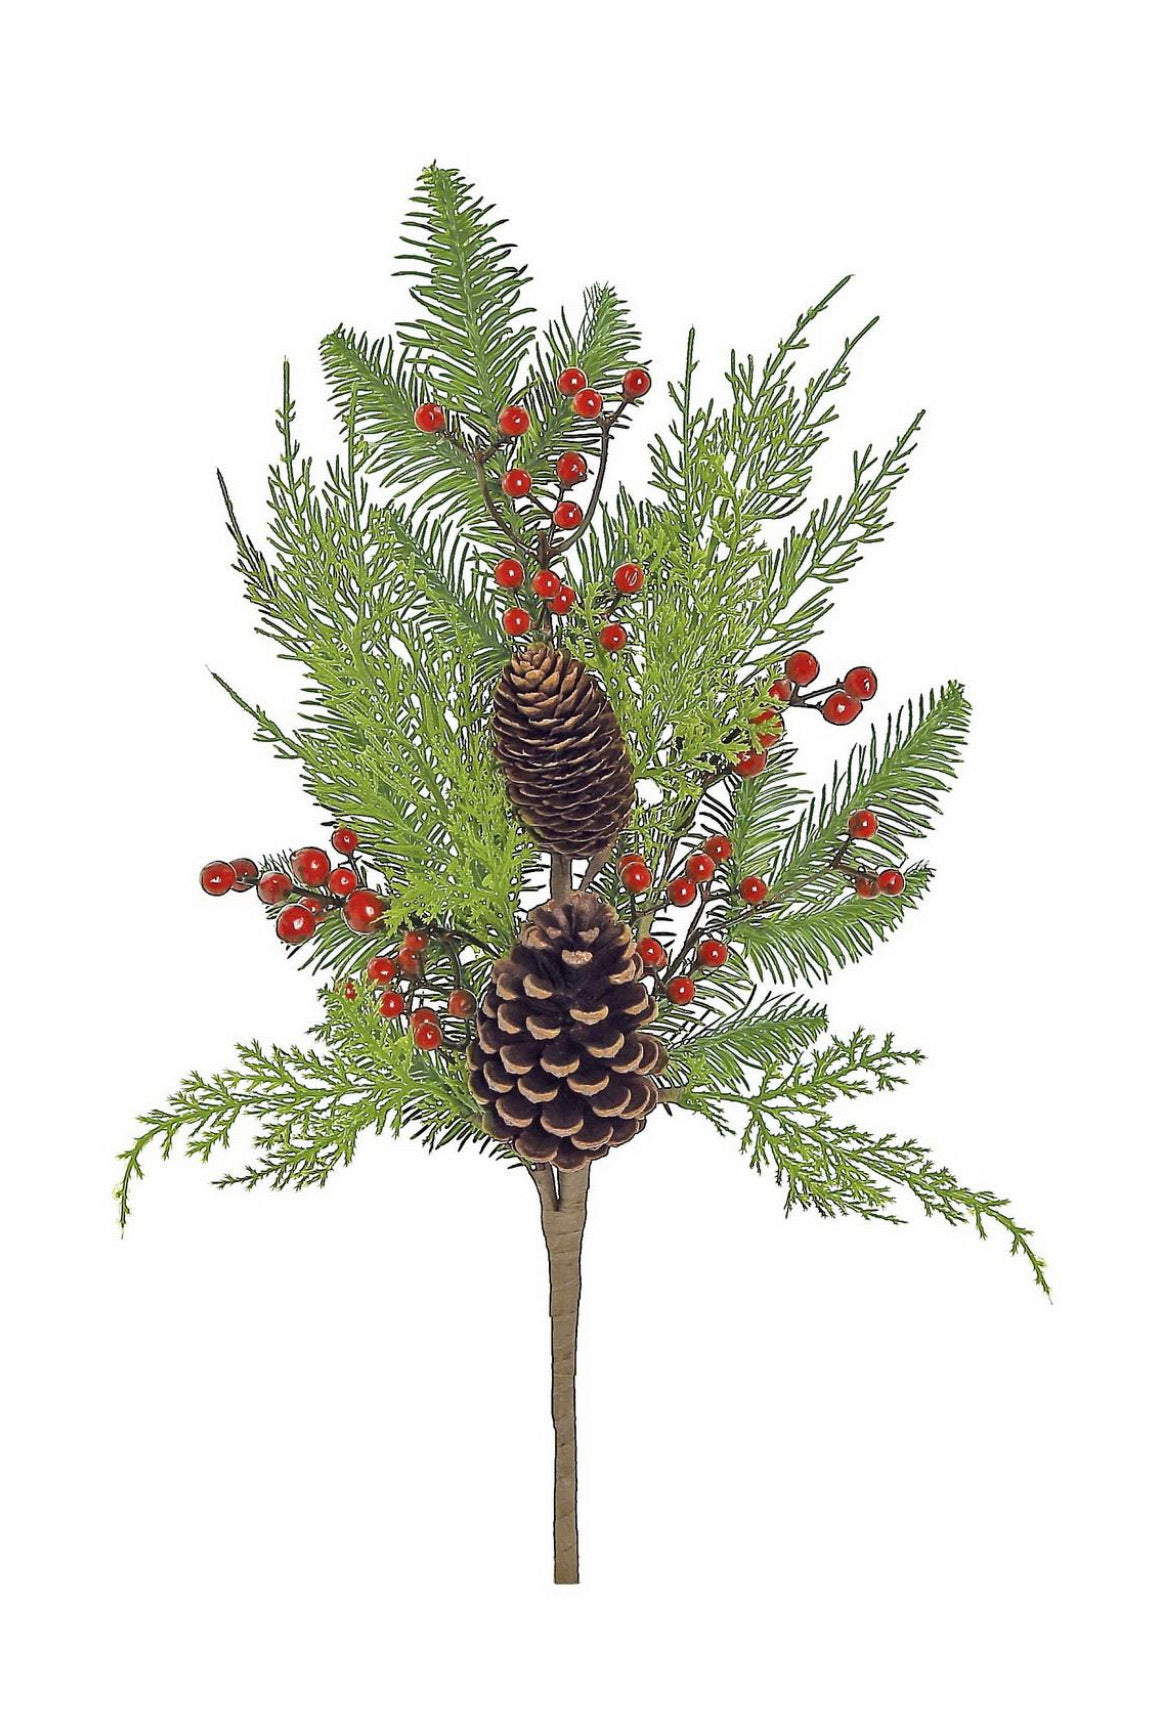 Mixed Christmas pine greenery with berries